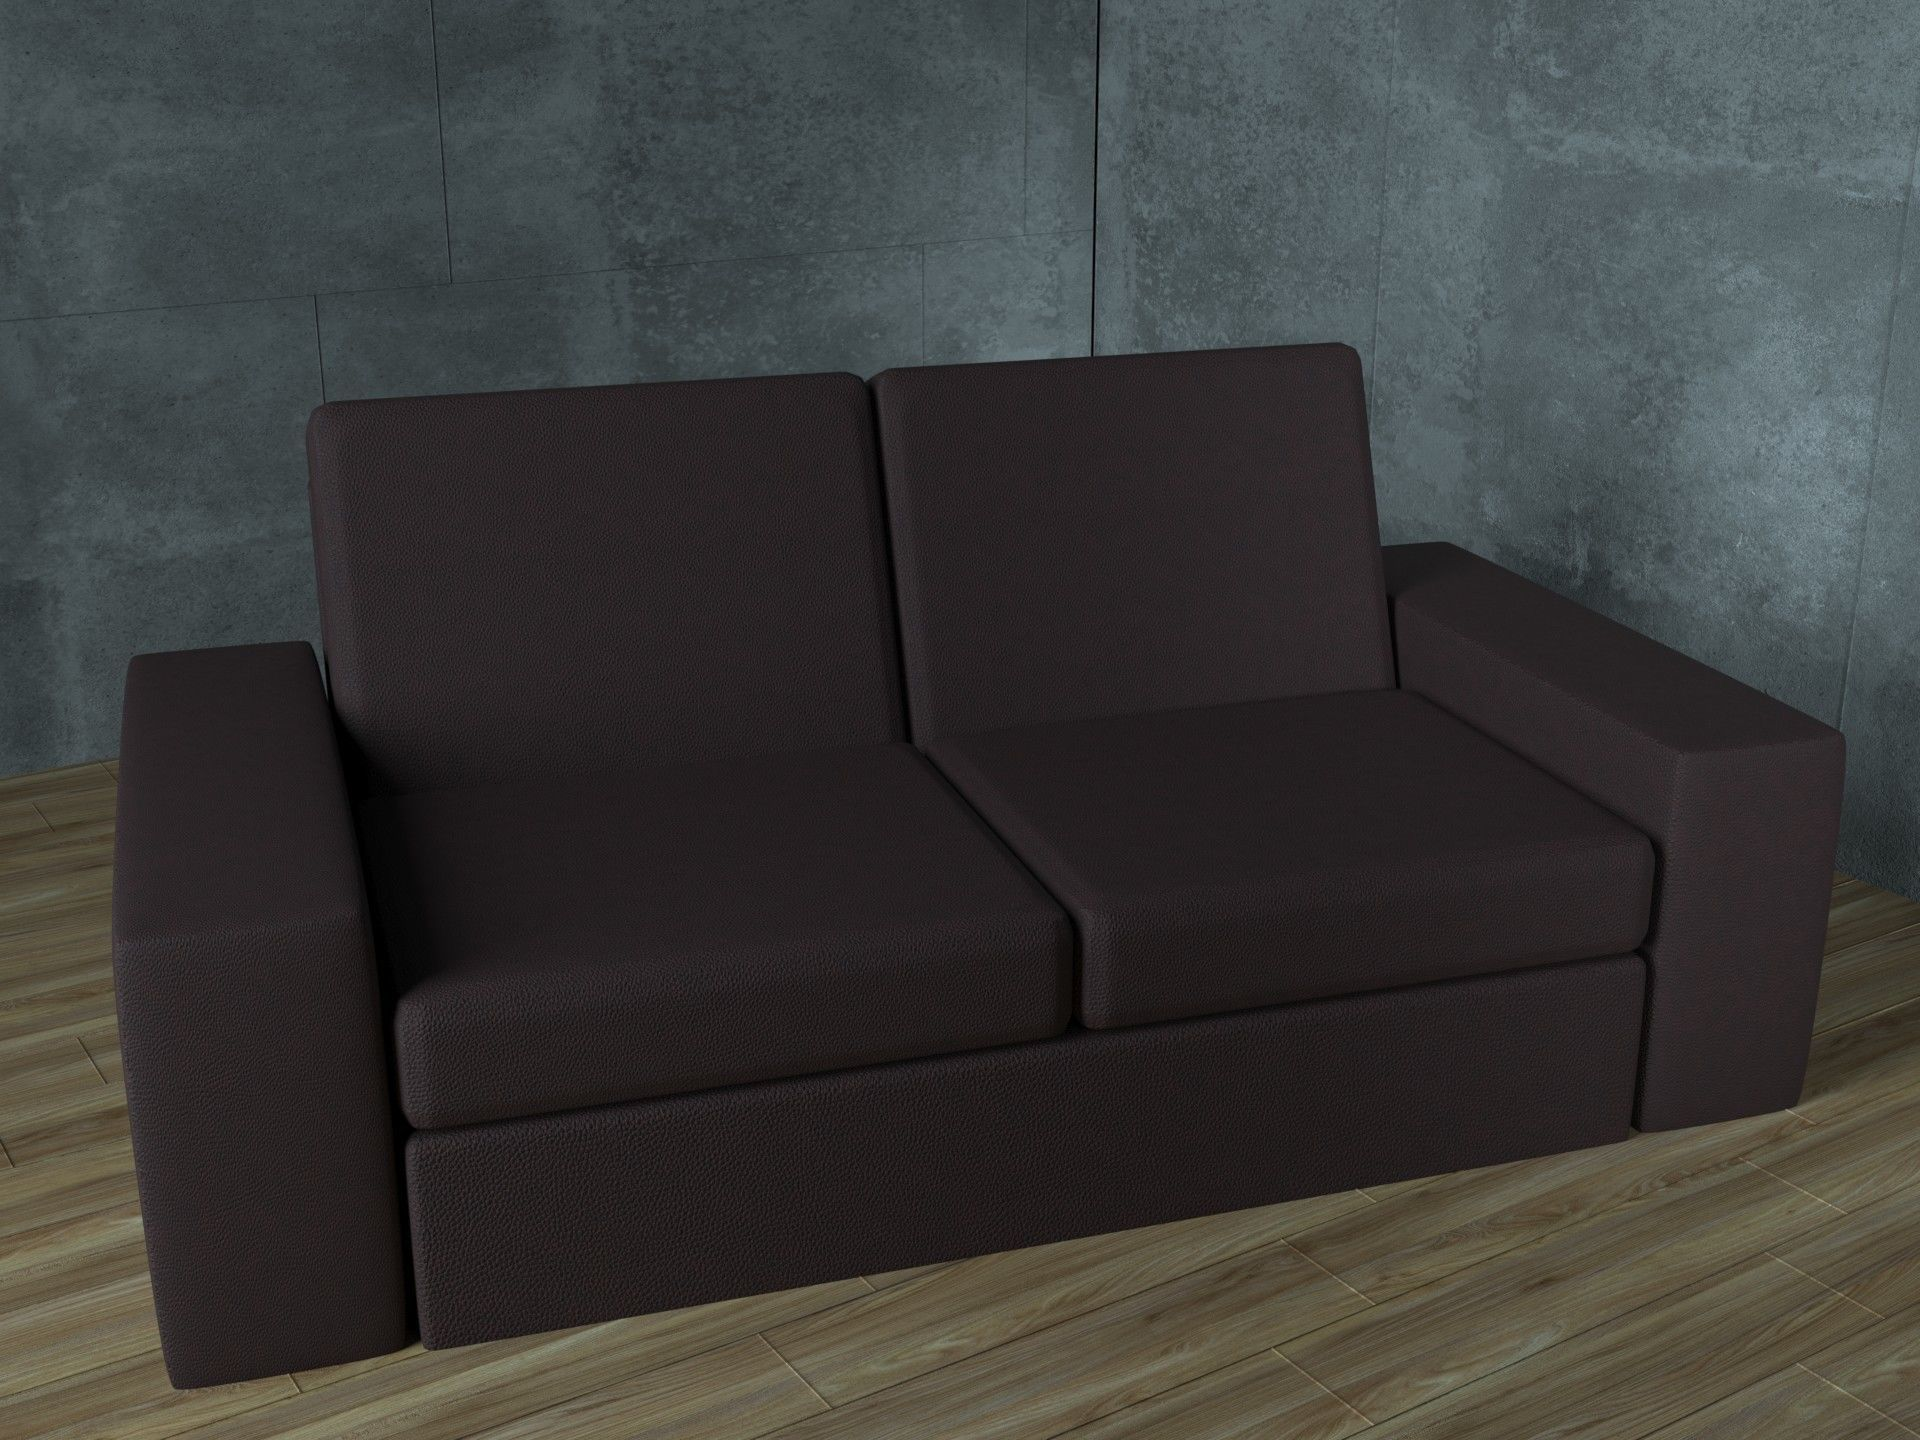 Small office sofa in dark brown leather color  46D model